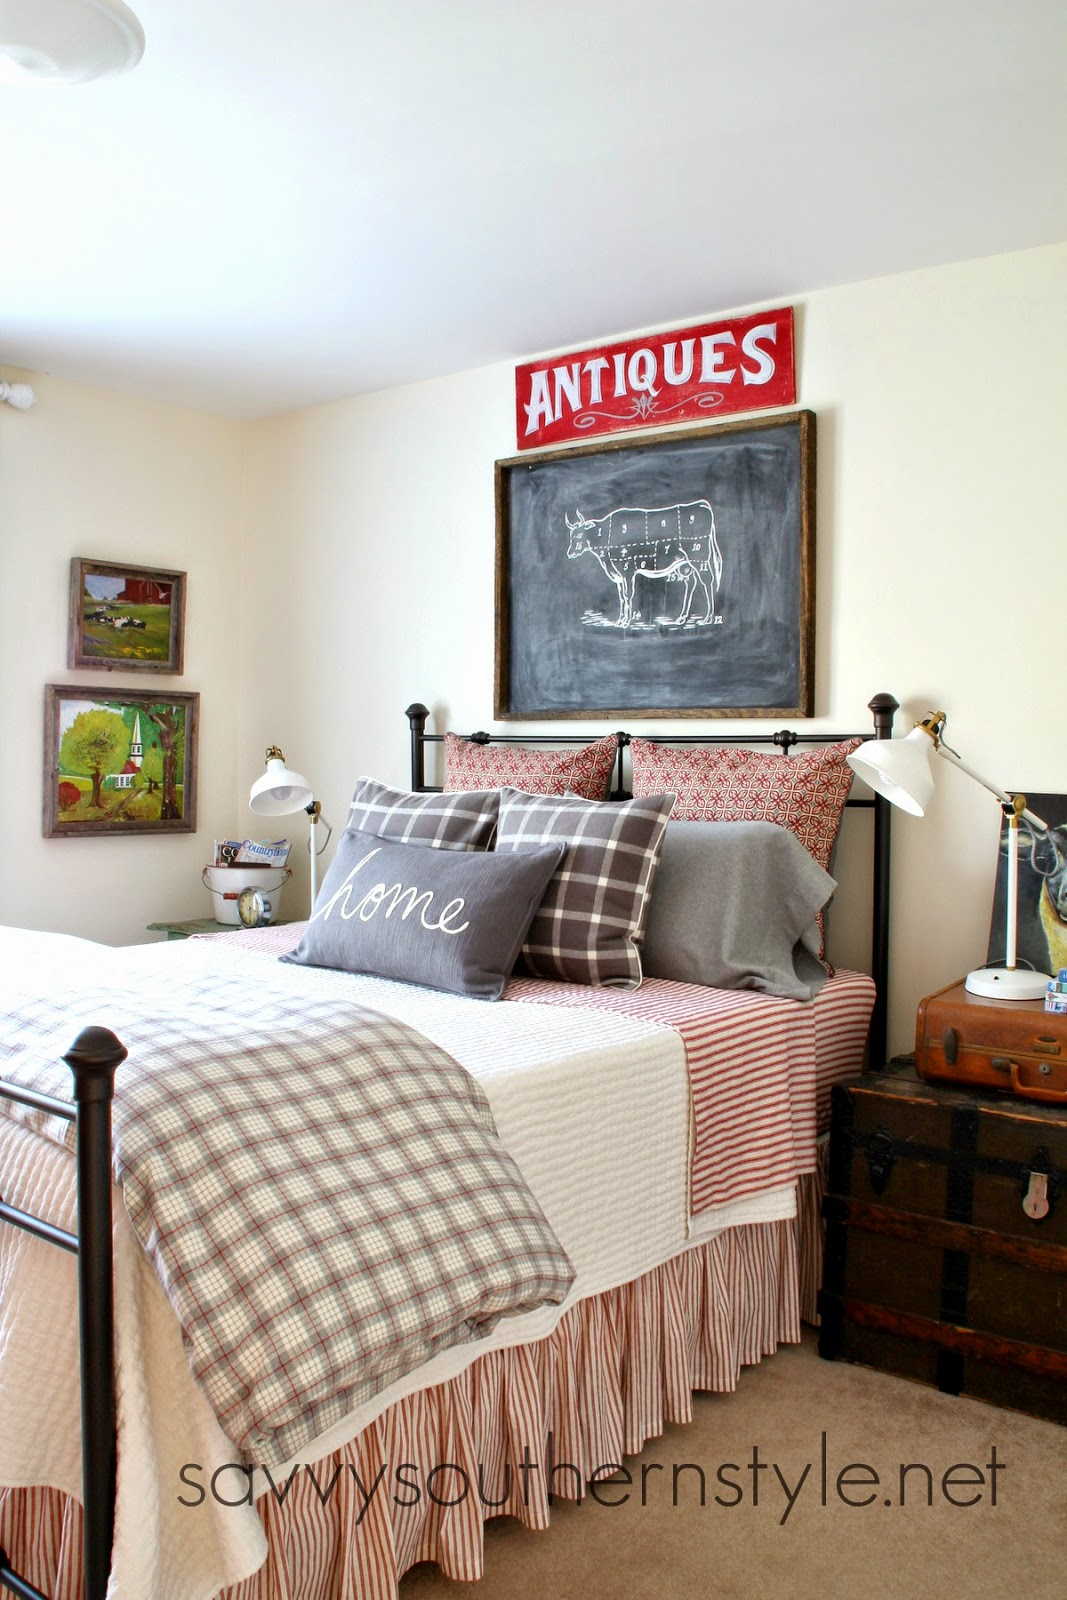 Savvy southern style ikea ranarp lamps in the guestroom for Southern style bedroom